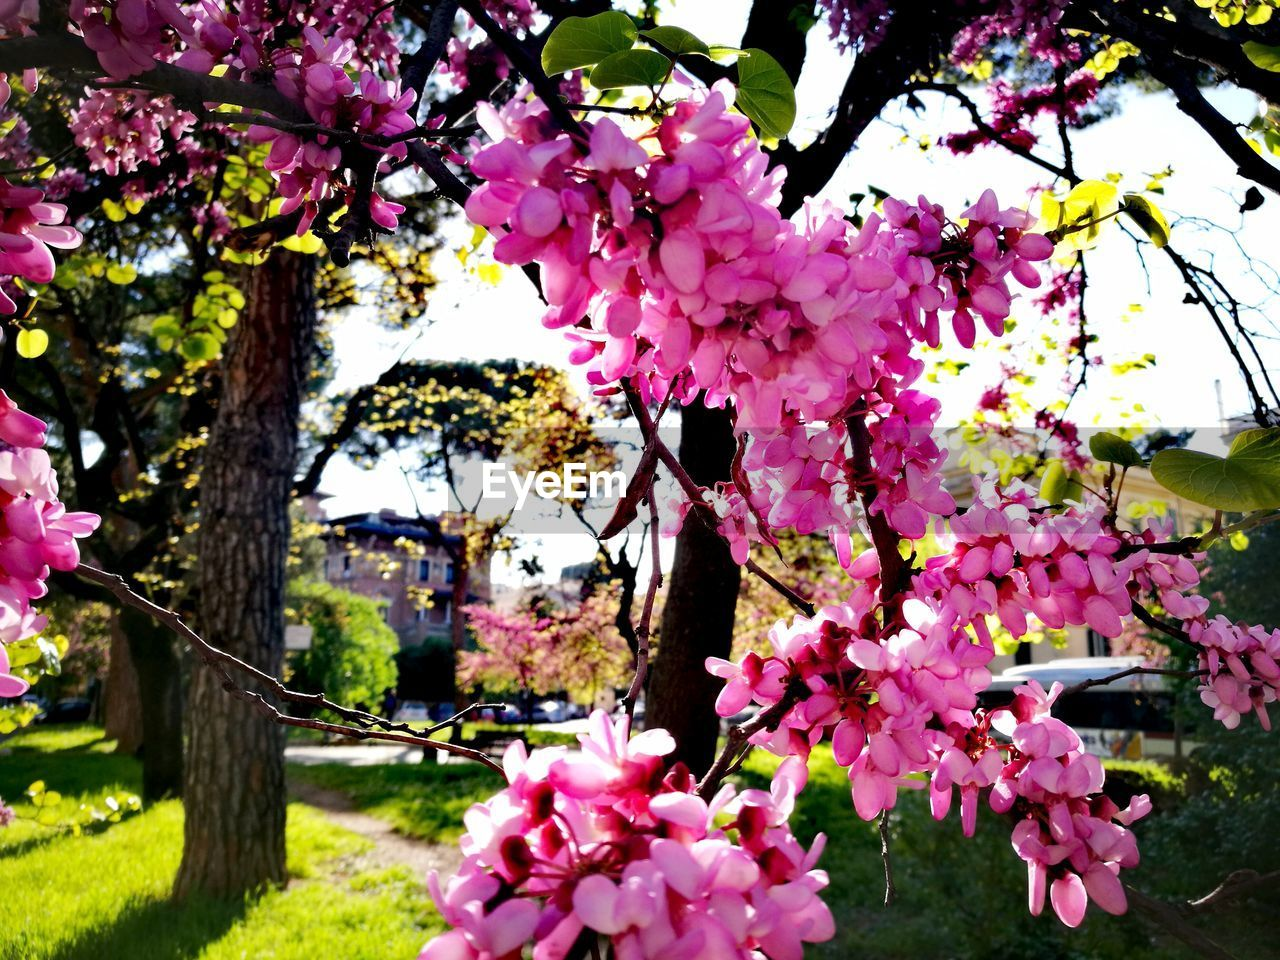 flower, tree, fragility, pink color, blossom, growth, beauty in nature, cherry blossom, springtime, freshness, cherry tree, nature, branch, petal, botany, apple tree, apple blossom, no people, flower head, blooming, magnolia, orchard, pink, day, outdoors, plum blossom, low angle view, close-up, sky